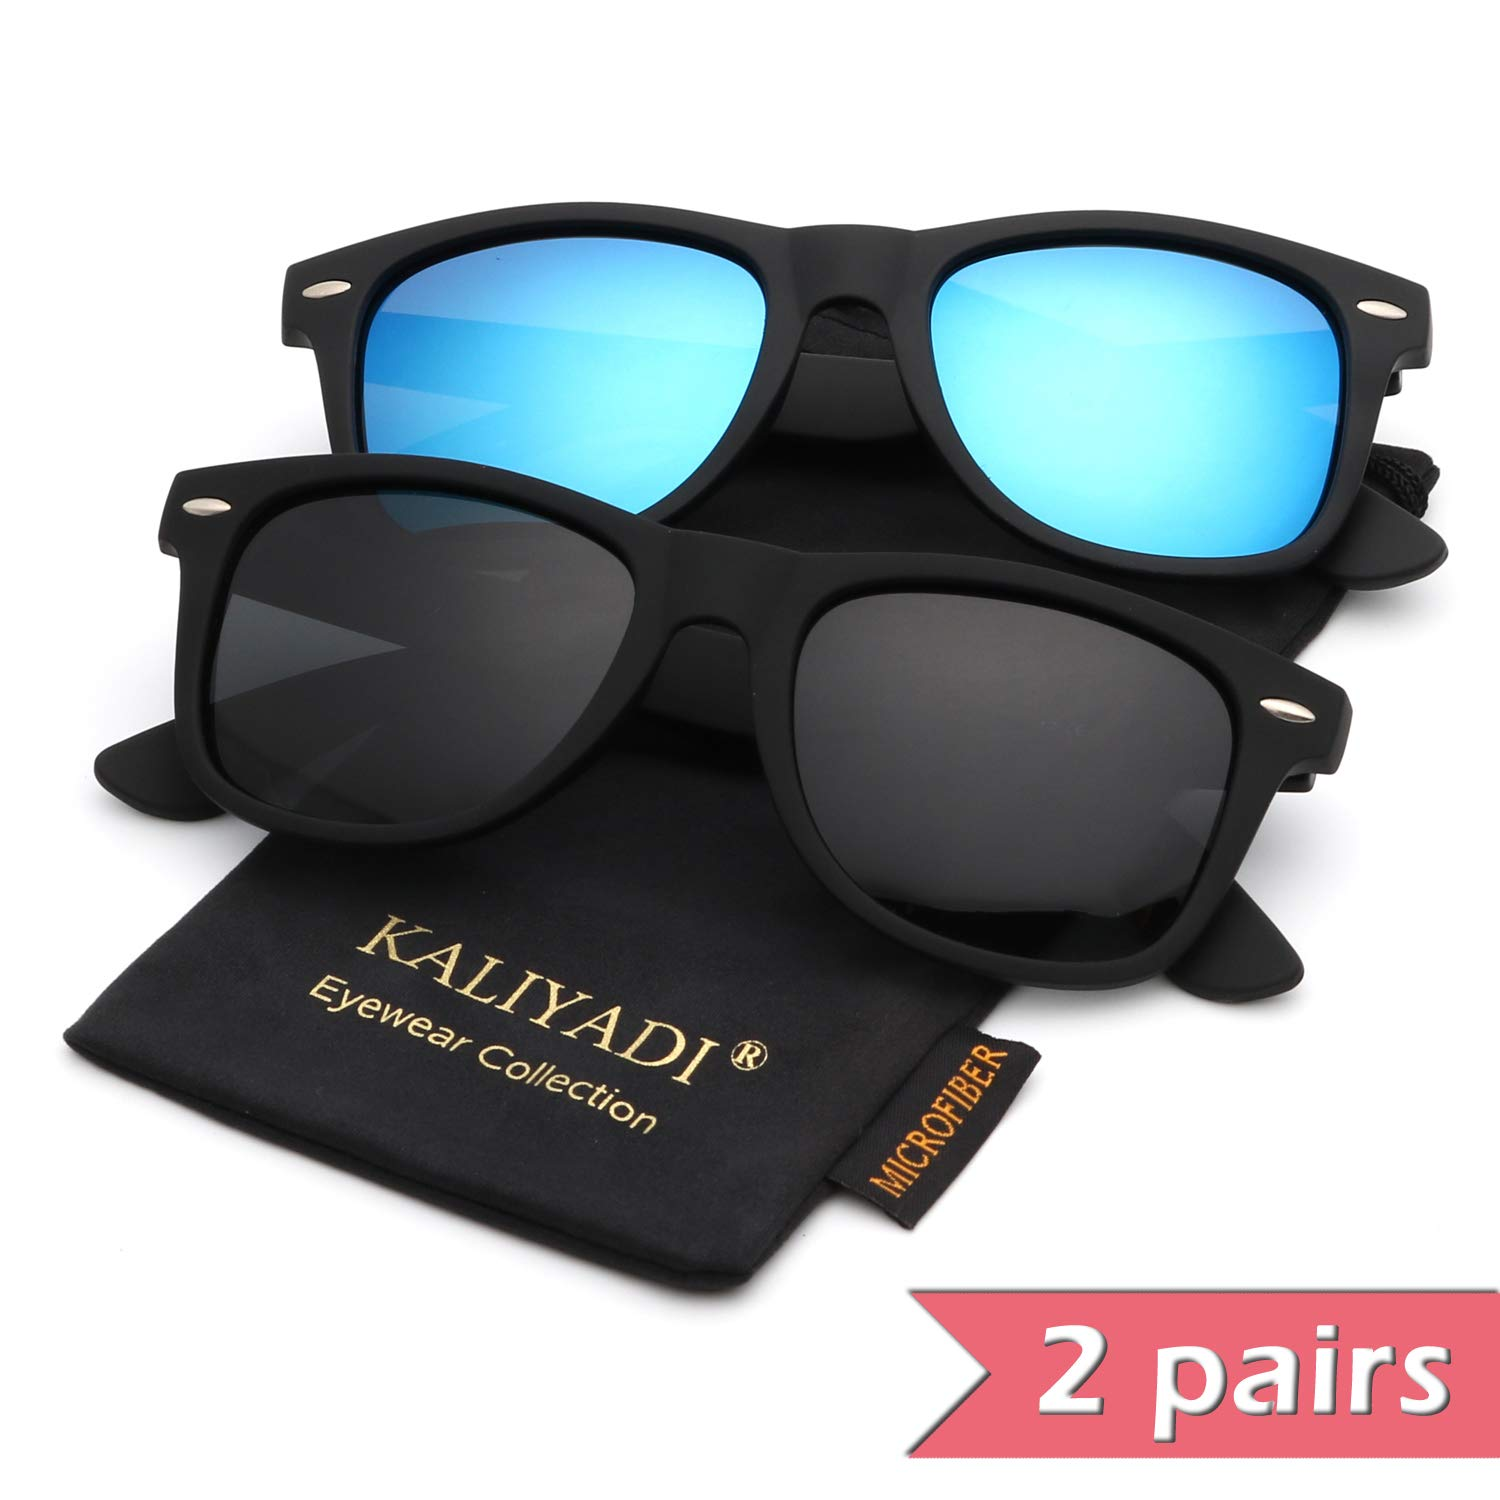 Mens Wayfarer Polarized Sunglasses Vintage Refective Mirror Lens Sun Glasses Womens:UV400 Protection (2 pairs)